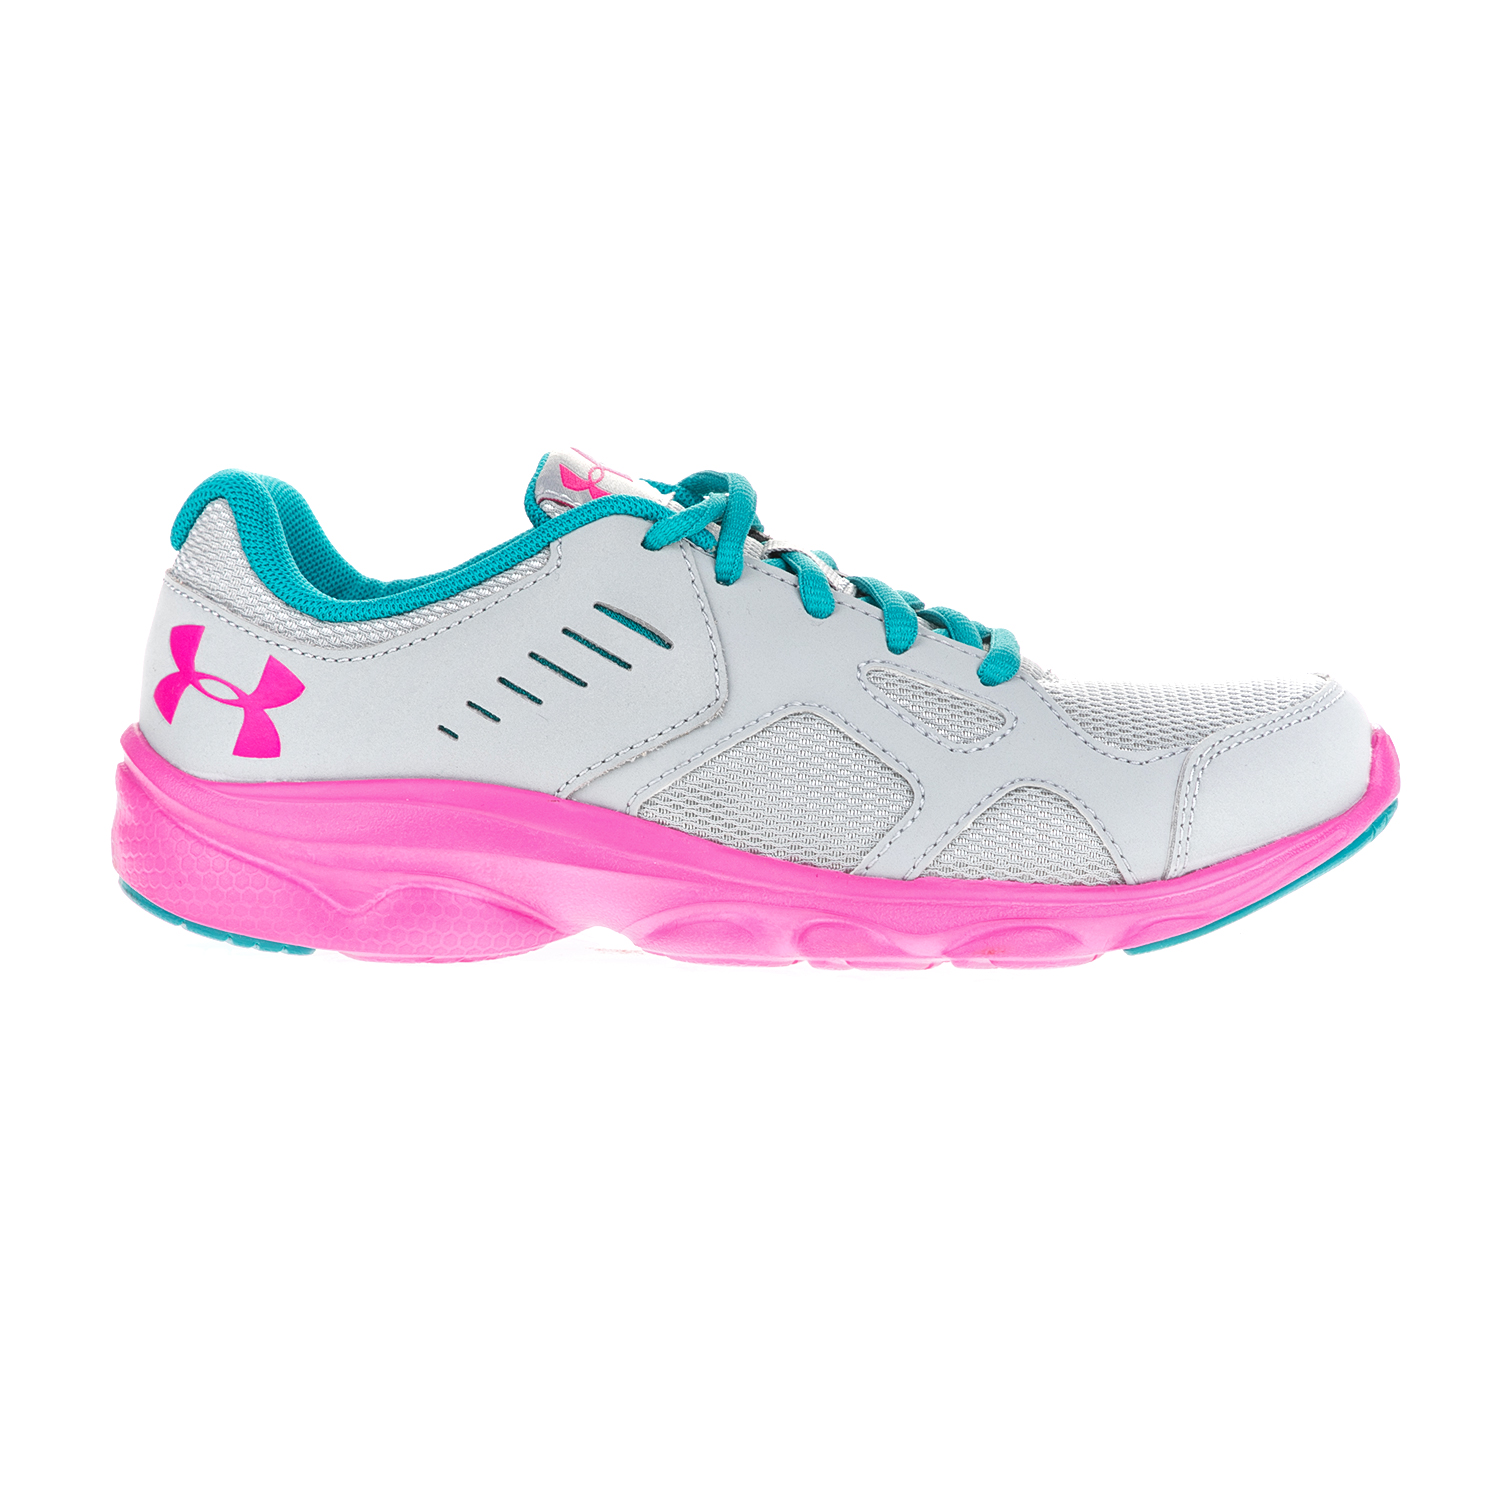 UNDER ARMOUR – Κοριτσίστικα αθλητικά παπούτσια UNDER ARMOUR GGS PACE RN γκρι